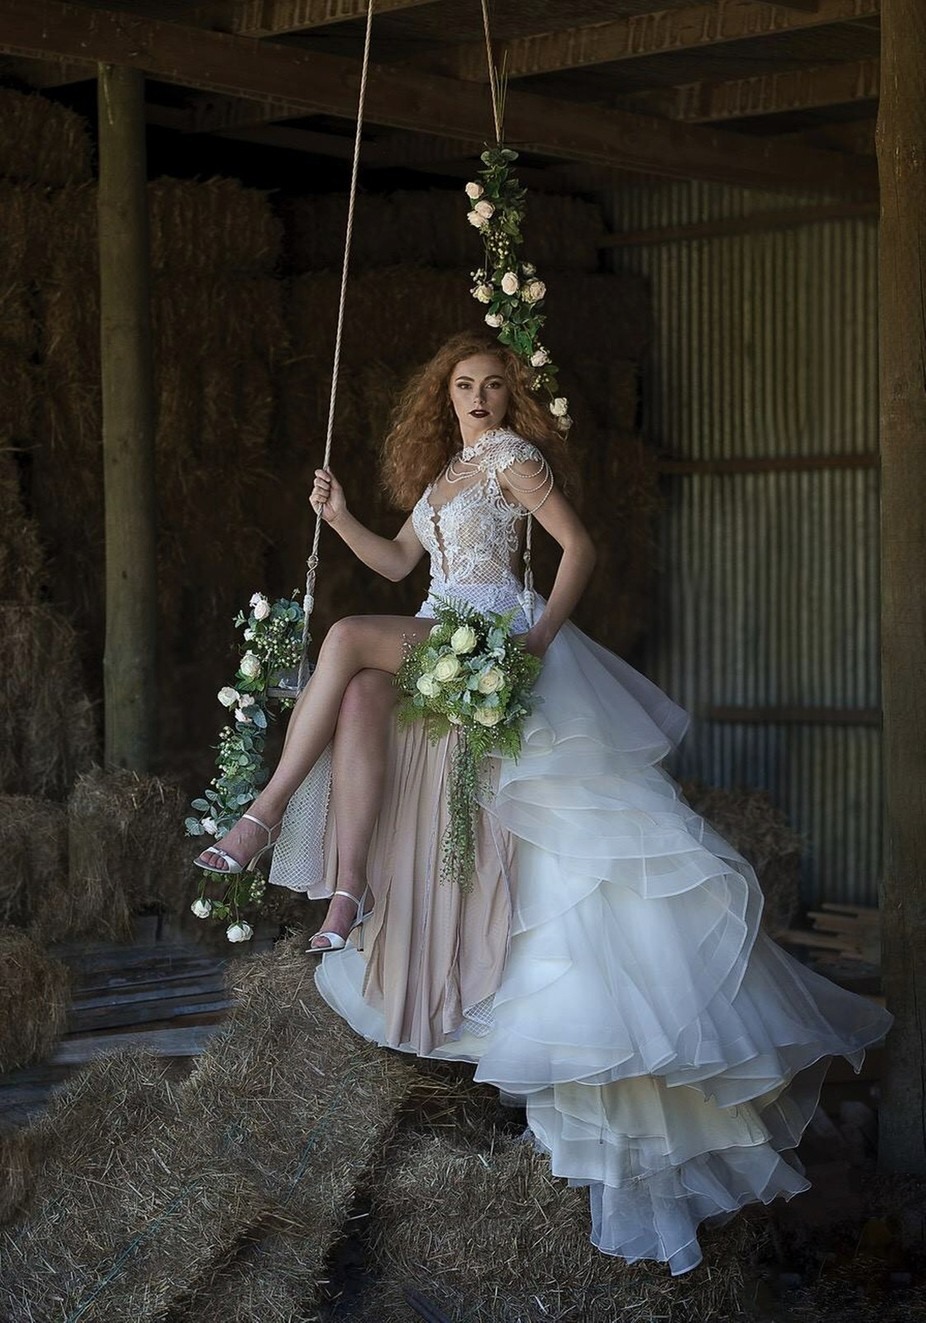 A bride on a swing in a hay shed. Just a normal wedding photo. :) by Dolceweddingphotography - Weddings And Fashion Photo Contest